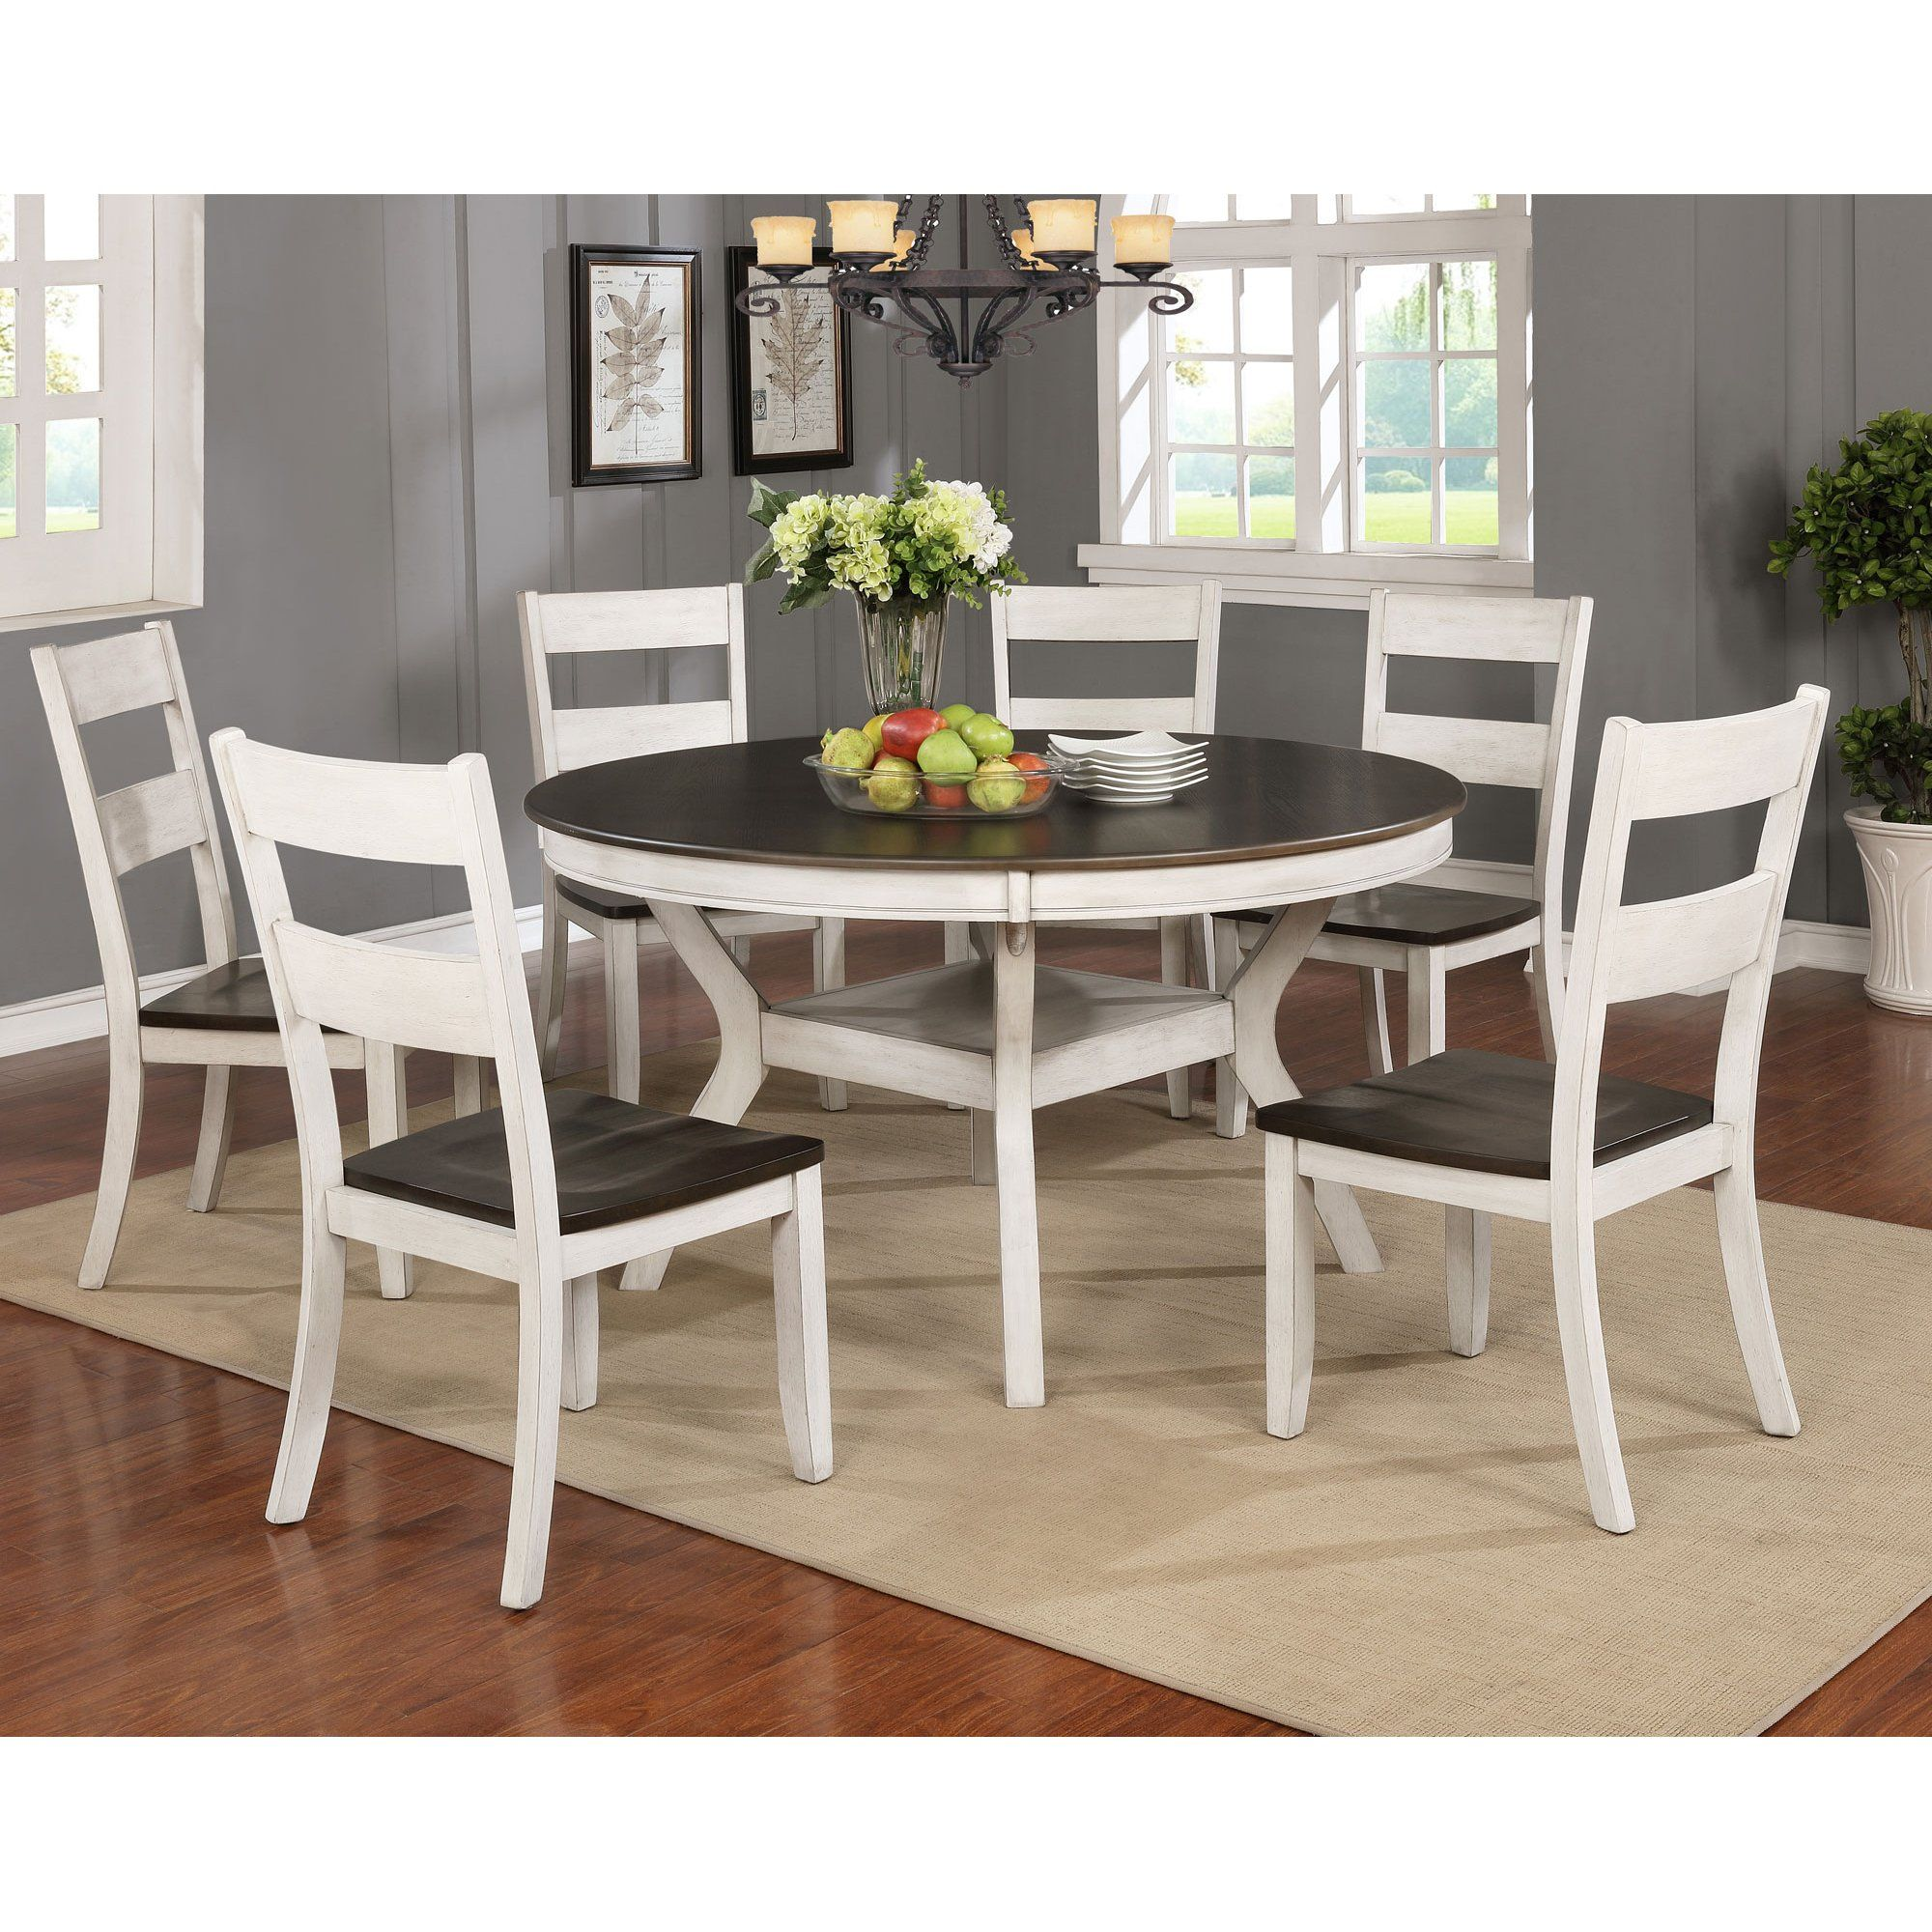 White And Brown 7 Piece Dining Set Perrin Solid Wood Dining